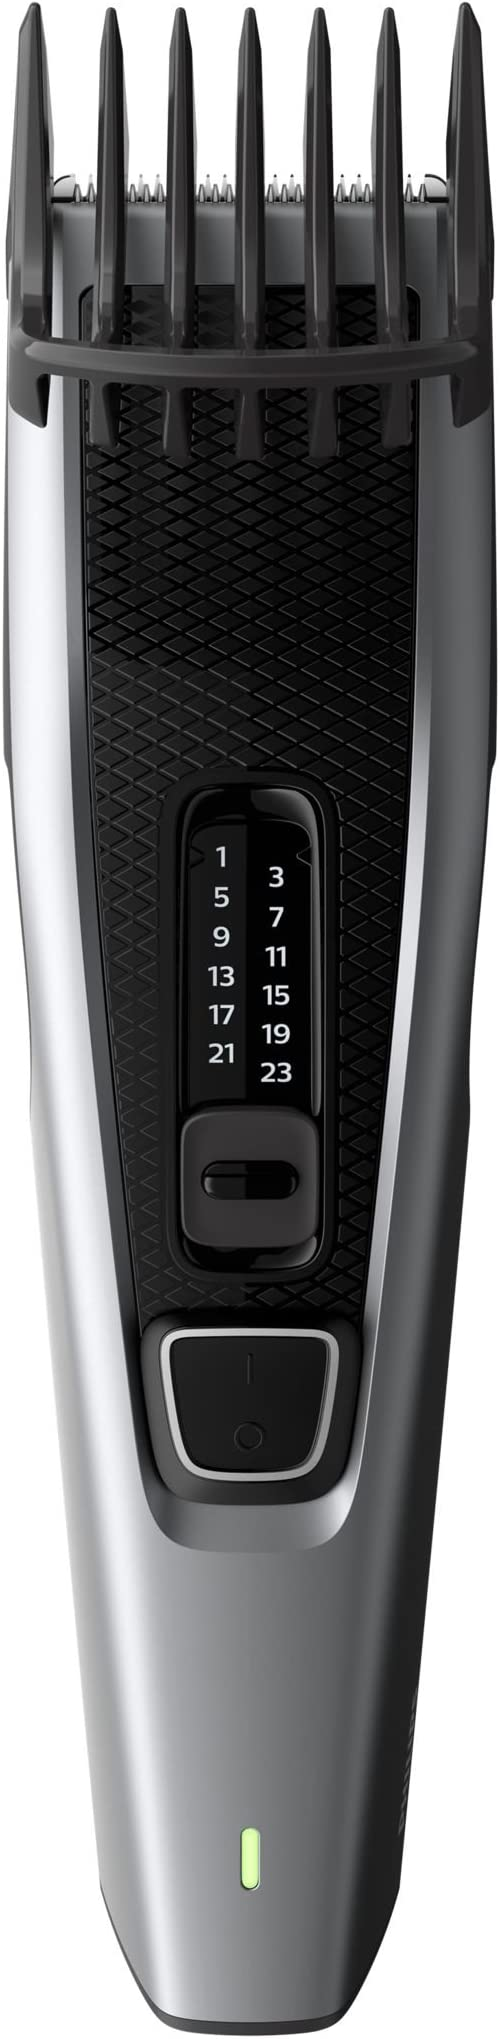 Philips Cortapelos HC3536/15 HAIRCLIPPER Series 3000 HC3536/15-Afeitadora (Negro, Gris, Rectángulo, 0,5 mm, 2,3 cm, 4,1 cm, Barba, Oído), U: Amazon.es: Hogar